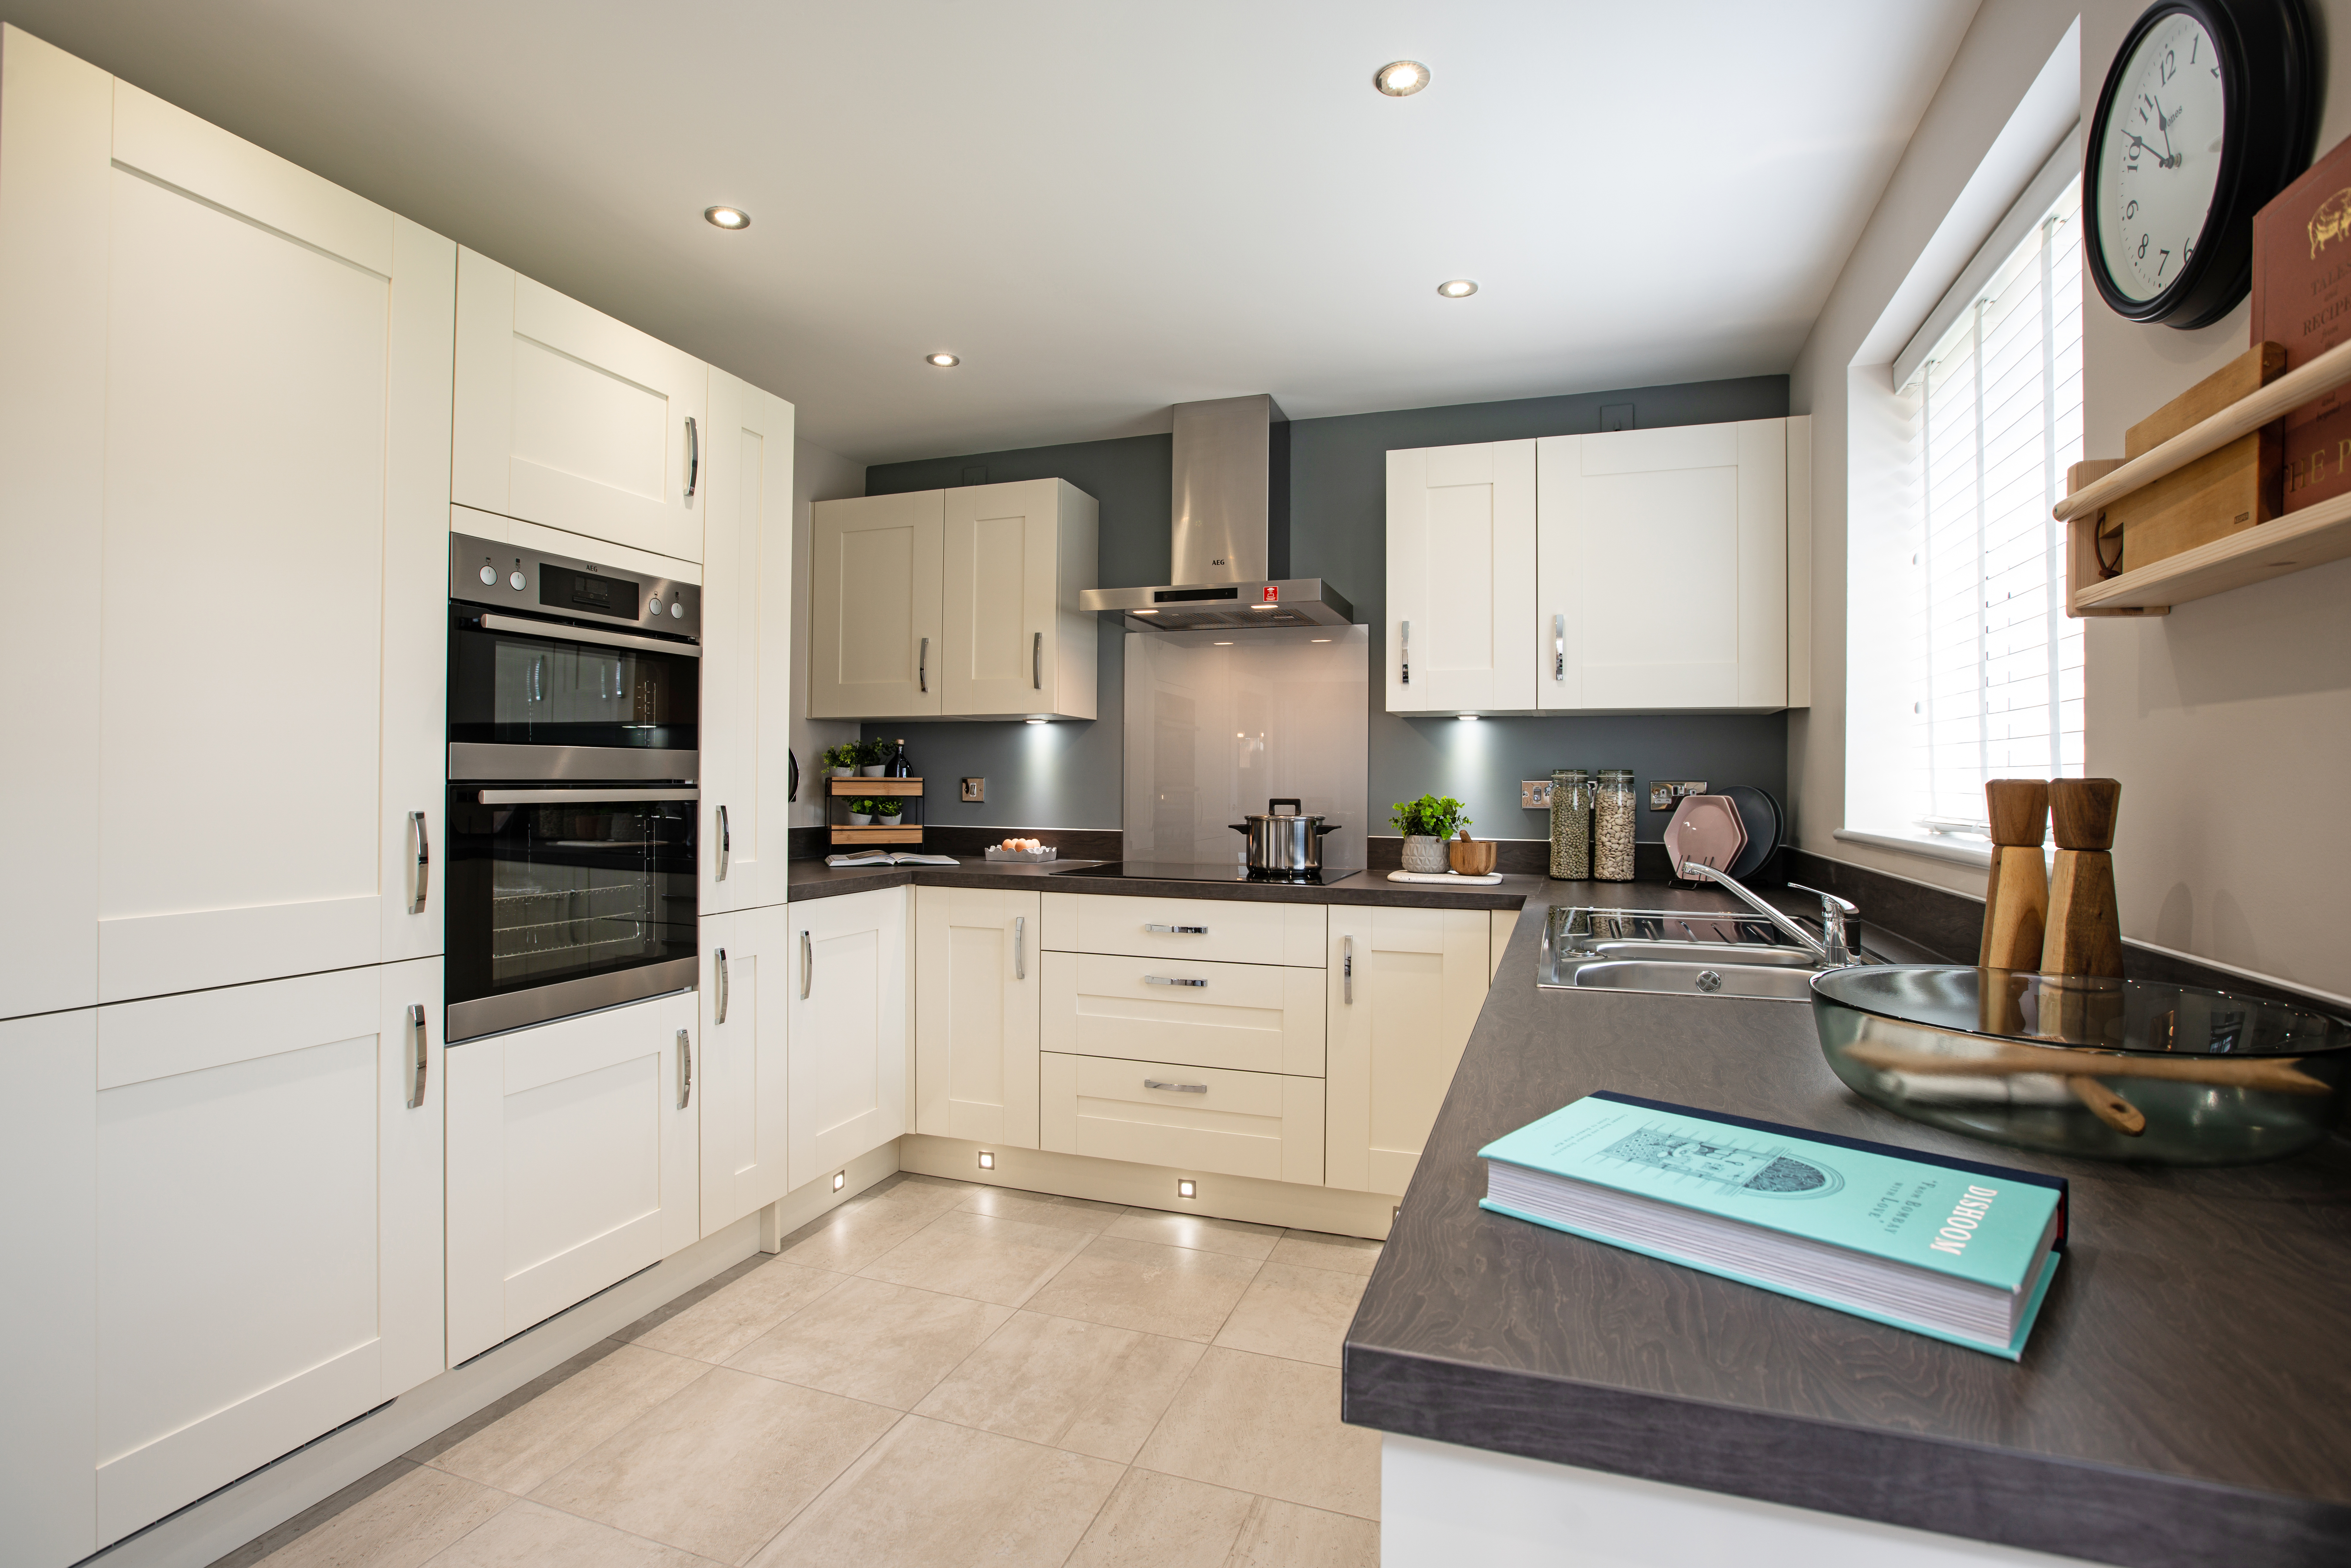 TW NM_Thornberry Hill_PD410_Eynsham_Kitchen 1